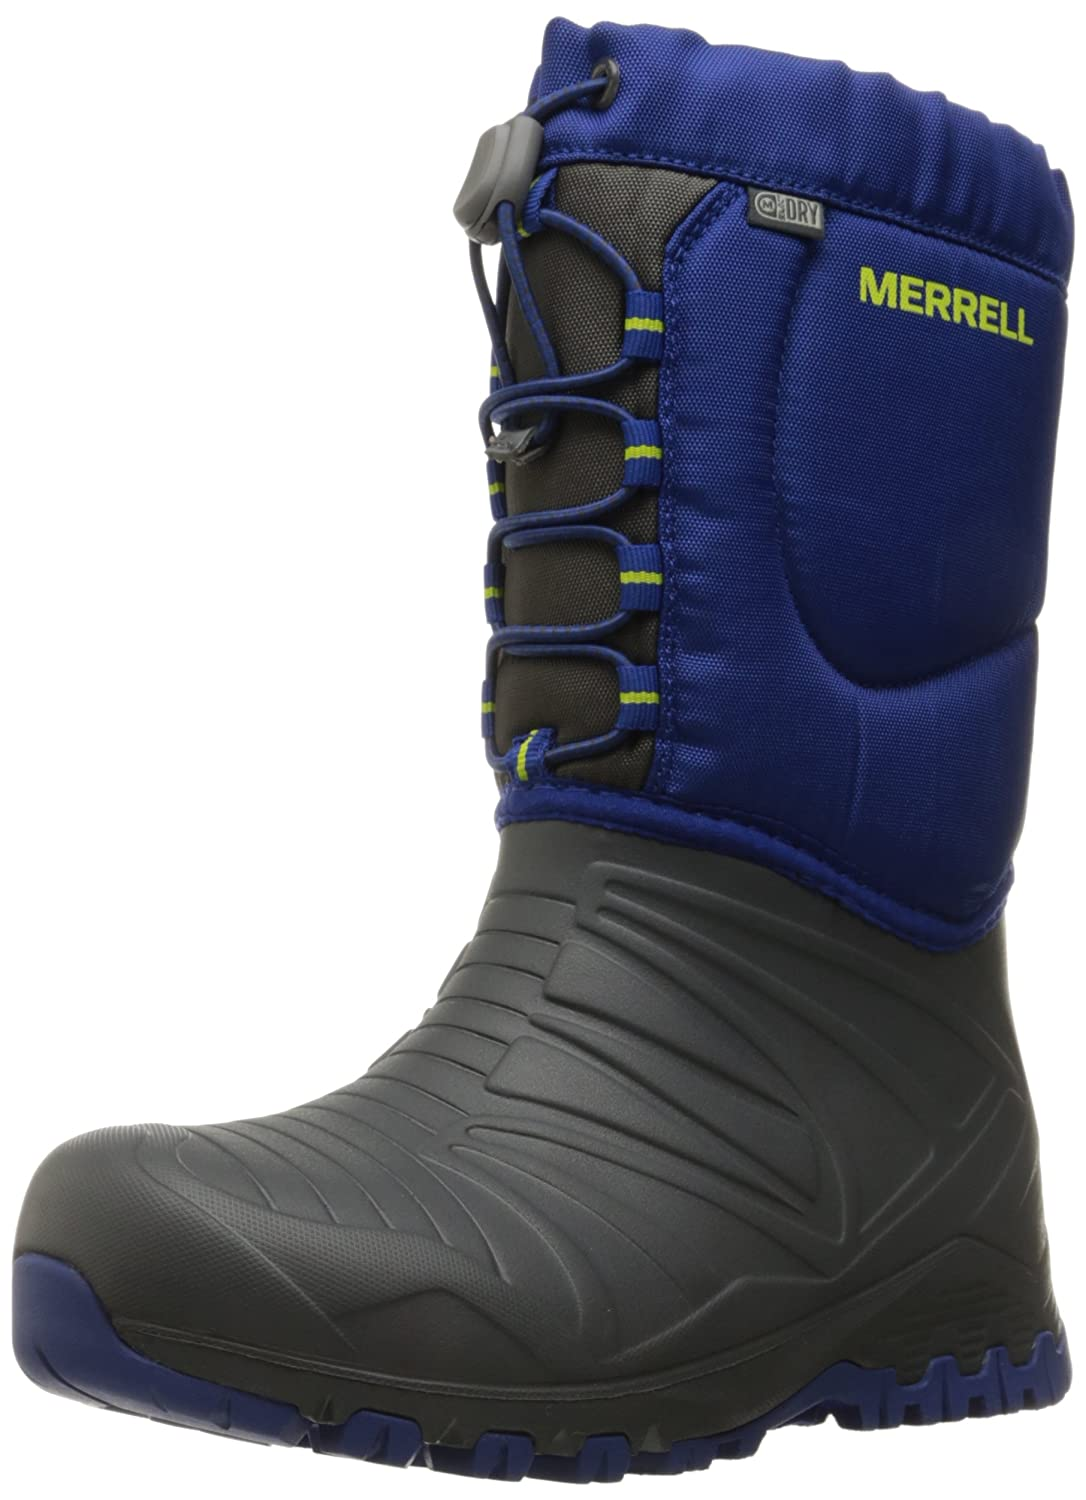 grau Cobalt 5 M US Big Kid Merrell Snow Quest Lite Waterproof Snow Stiefel (Little Kid Big Kid)